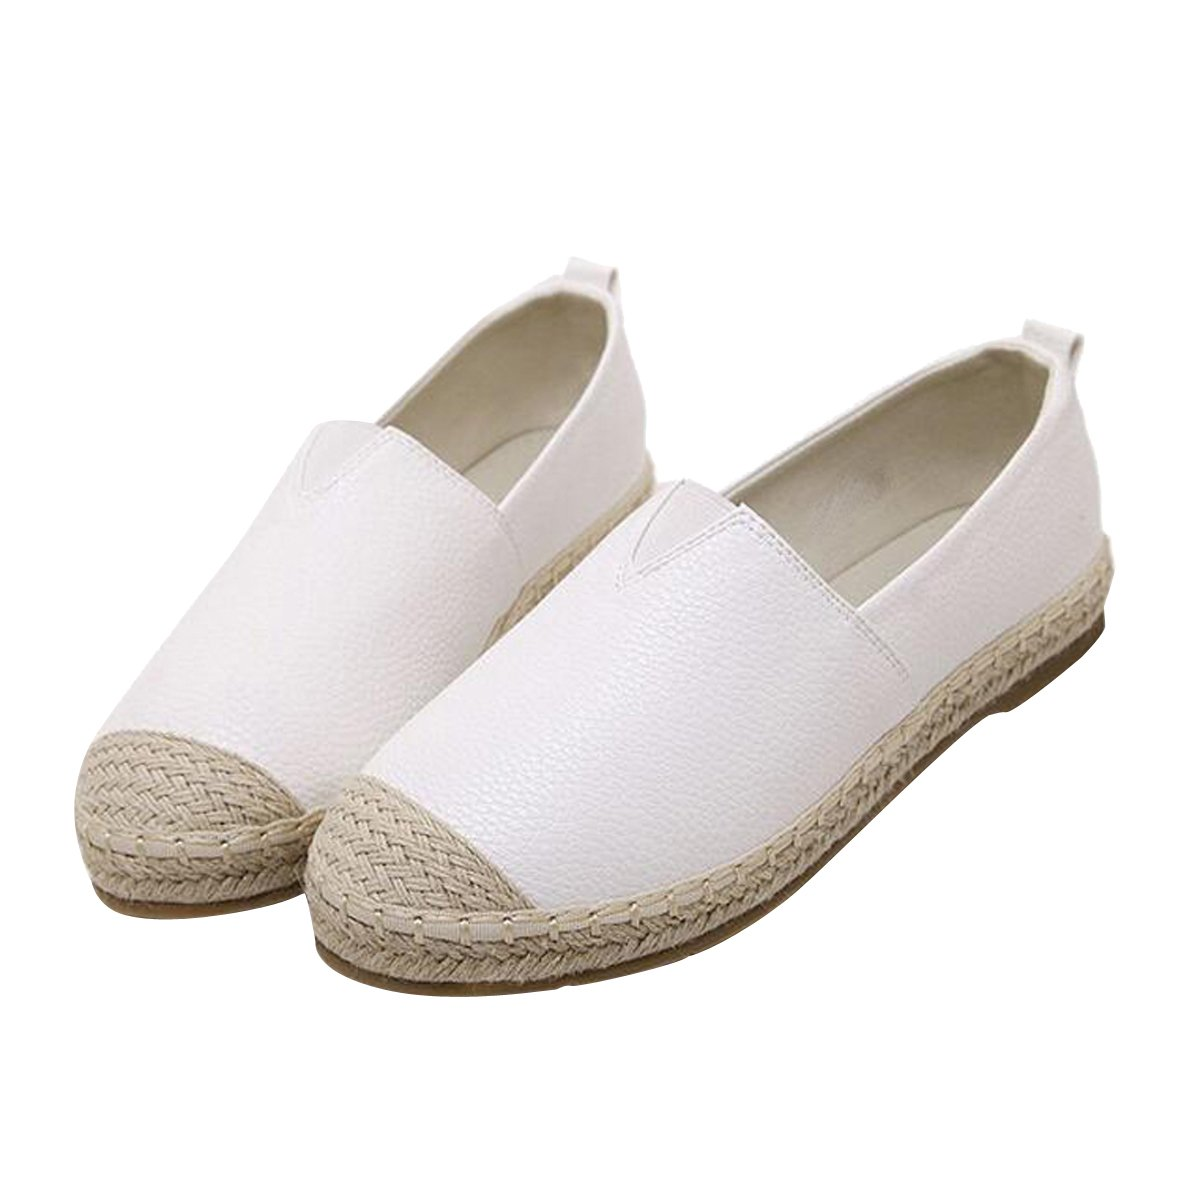 VFDB Slip On Espadrilles Casual Women Loafers Flat Shoes White 43